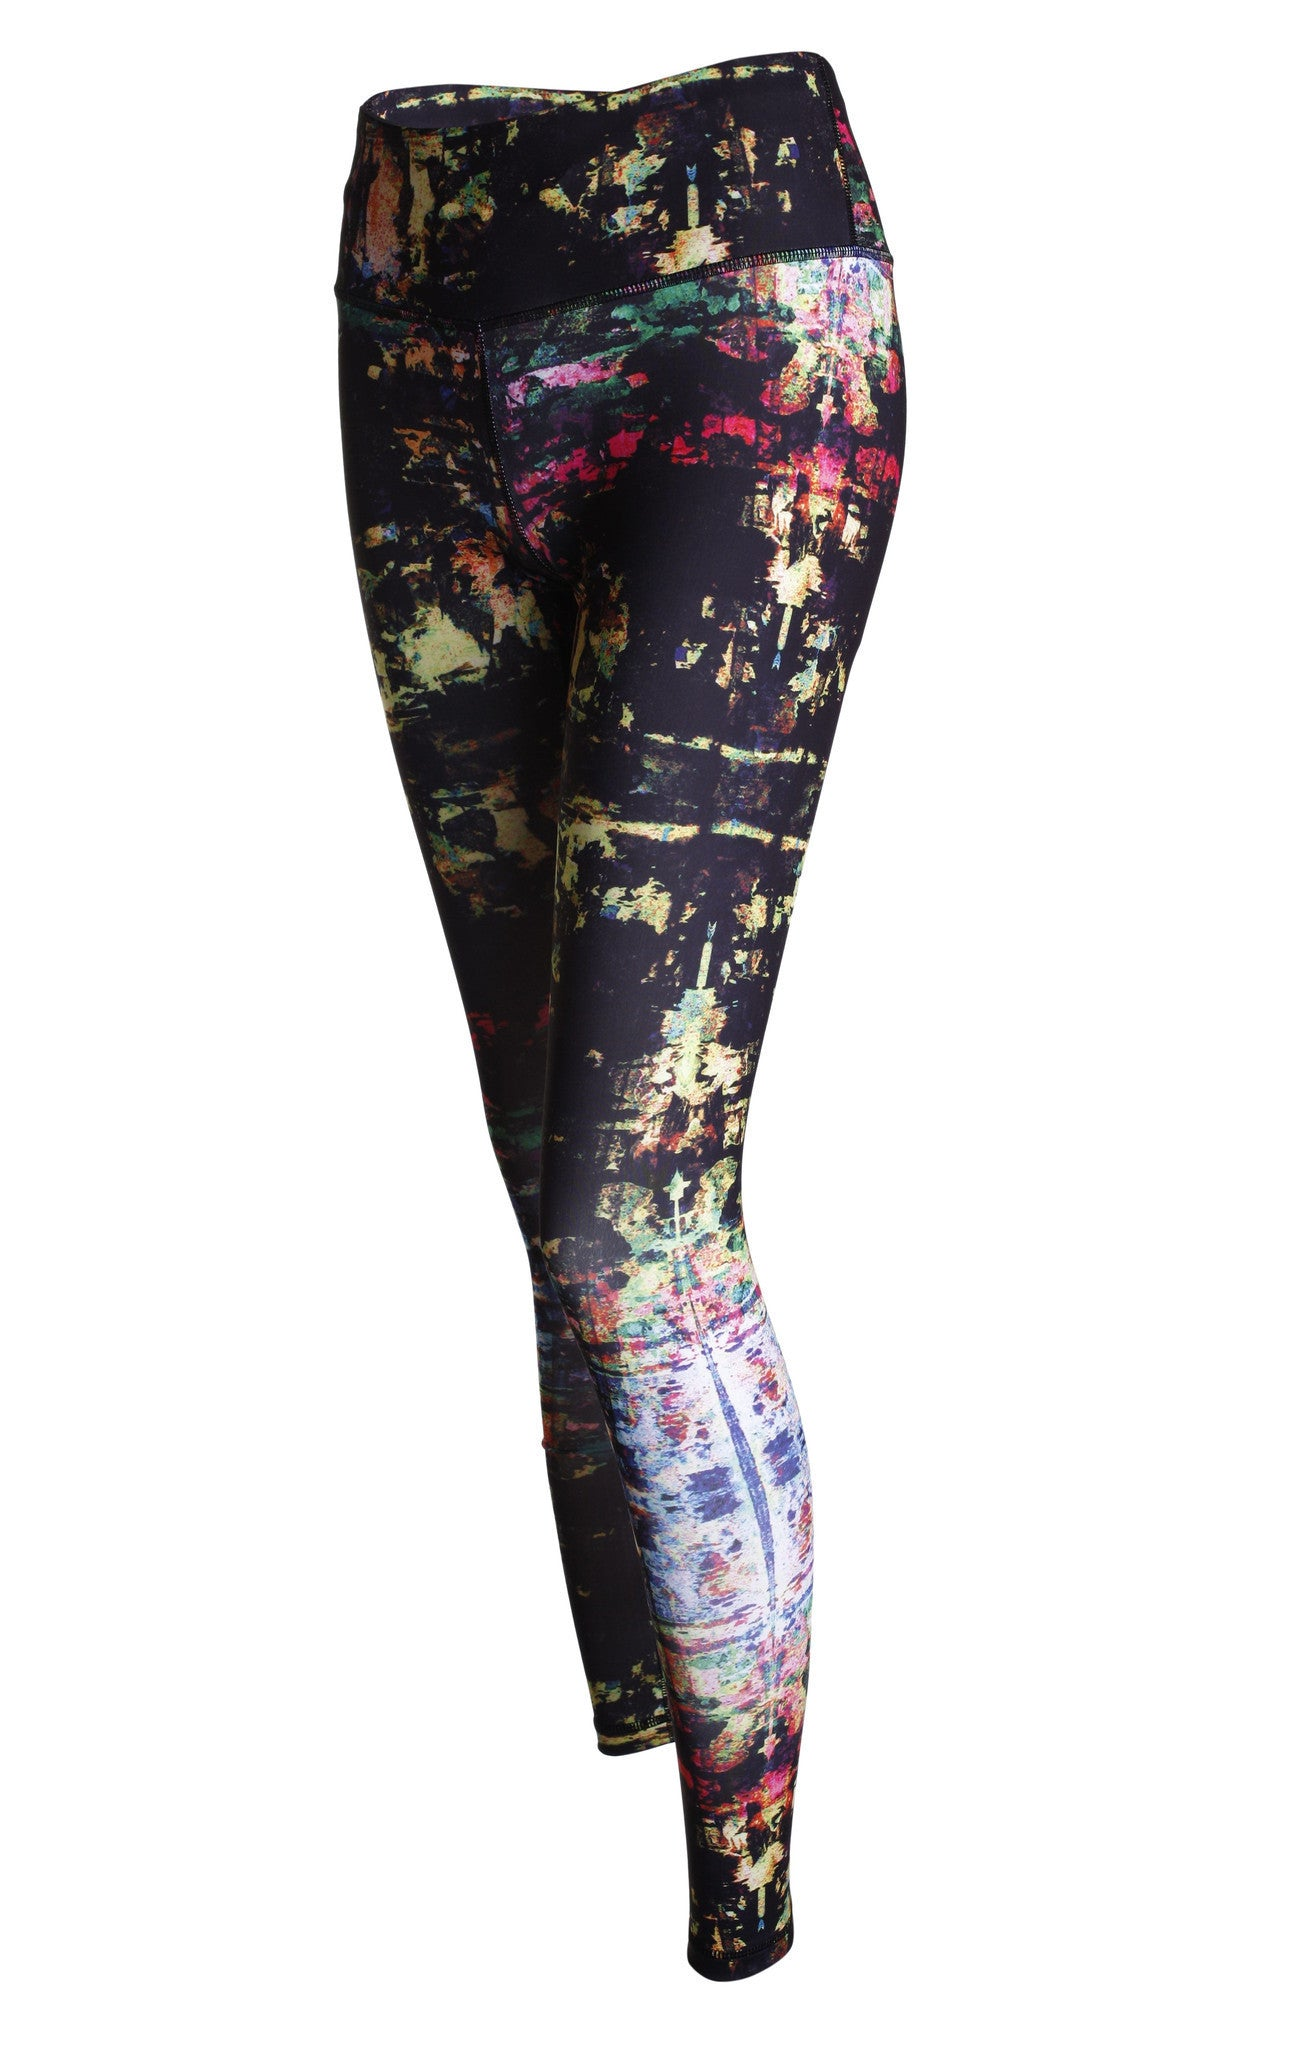 Lucky Graphic Legging - Coloured Shade